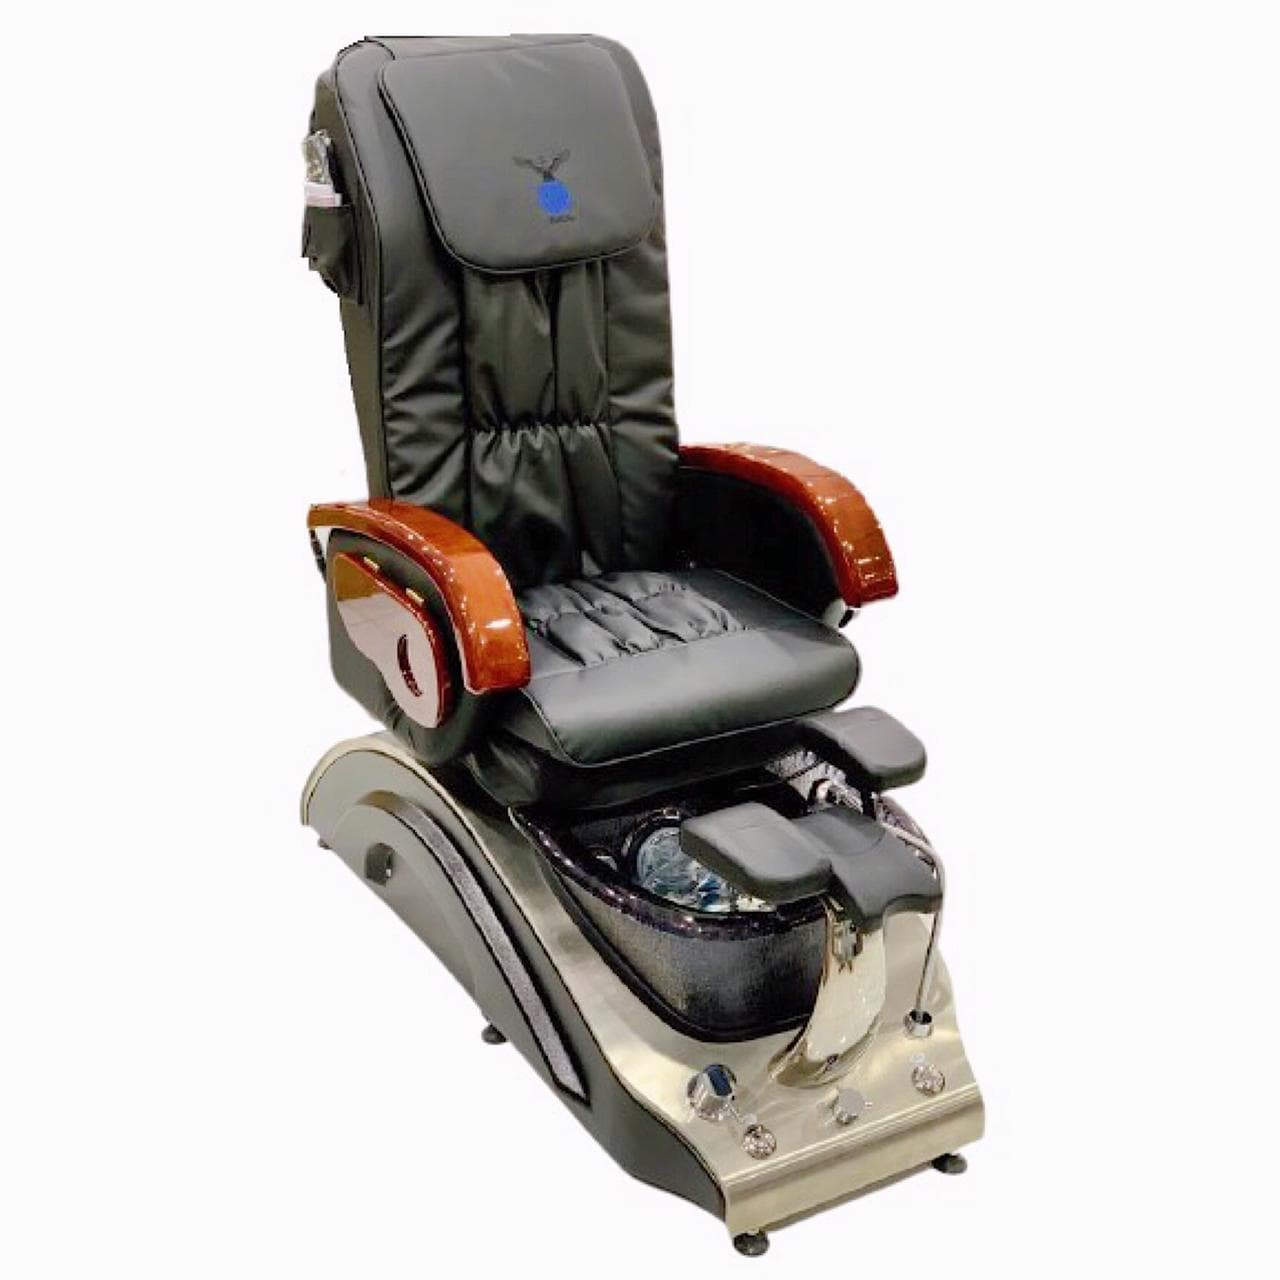 Professional Salon Pedicure Spa Chair And Massage Chair - S845